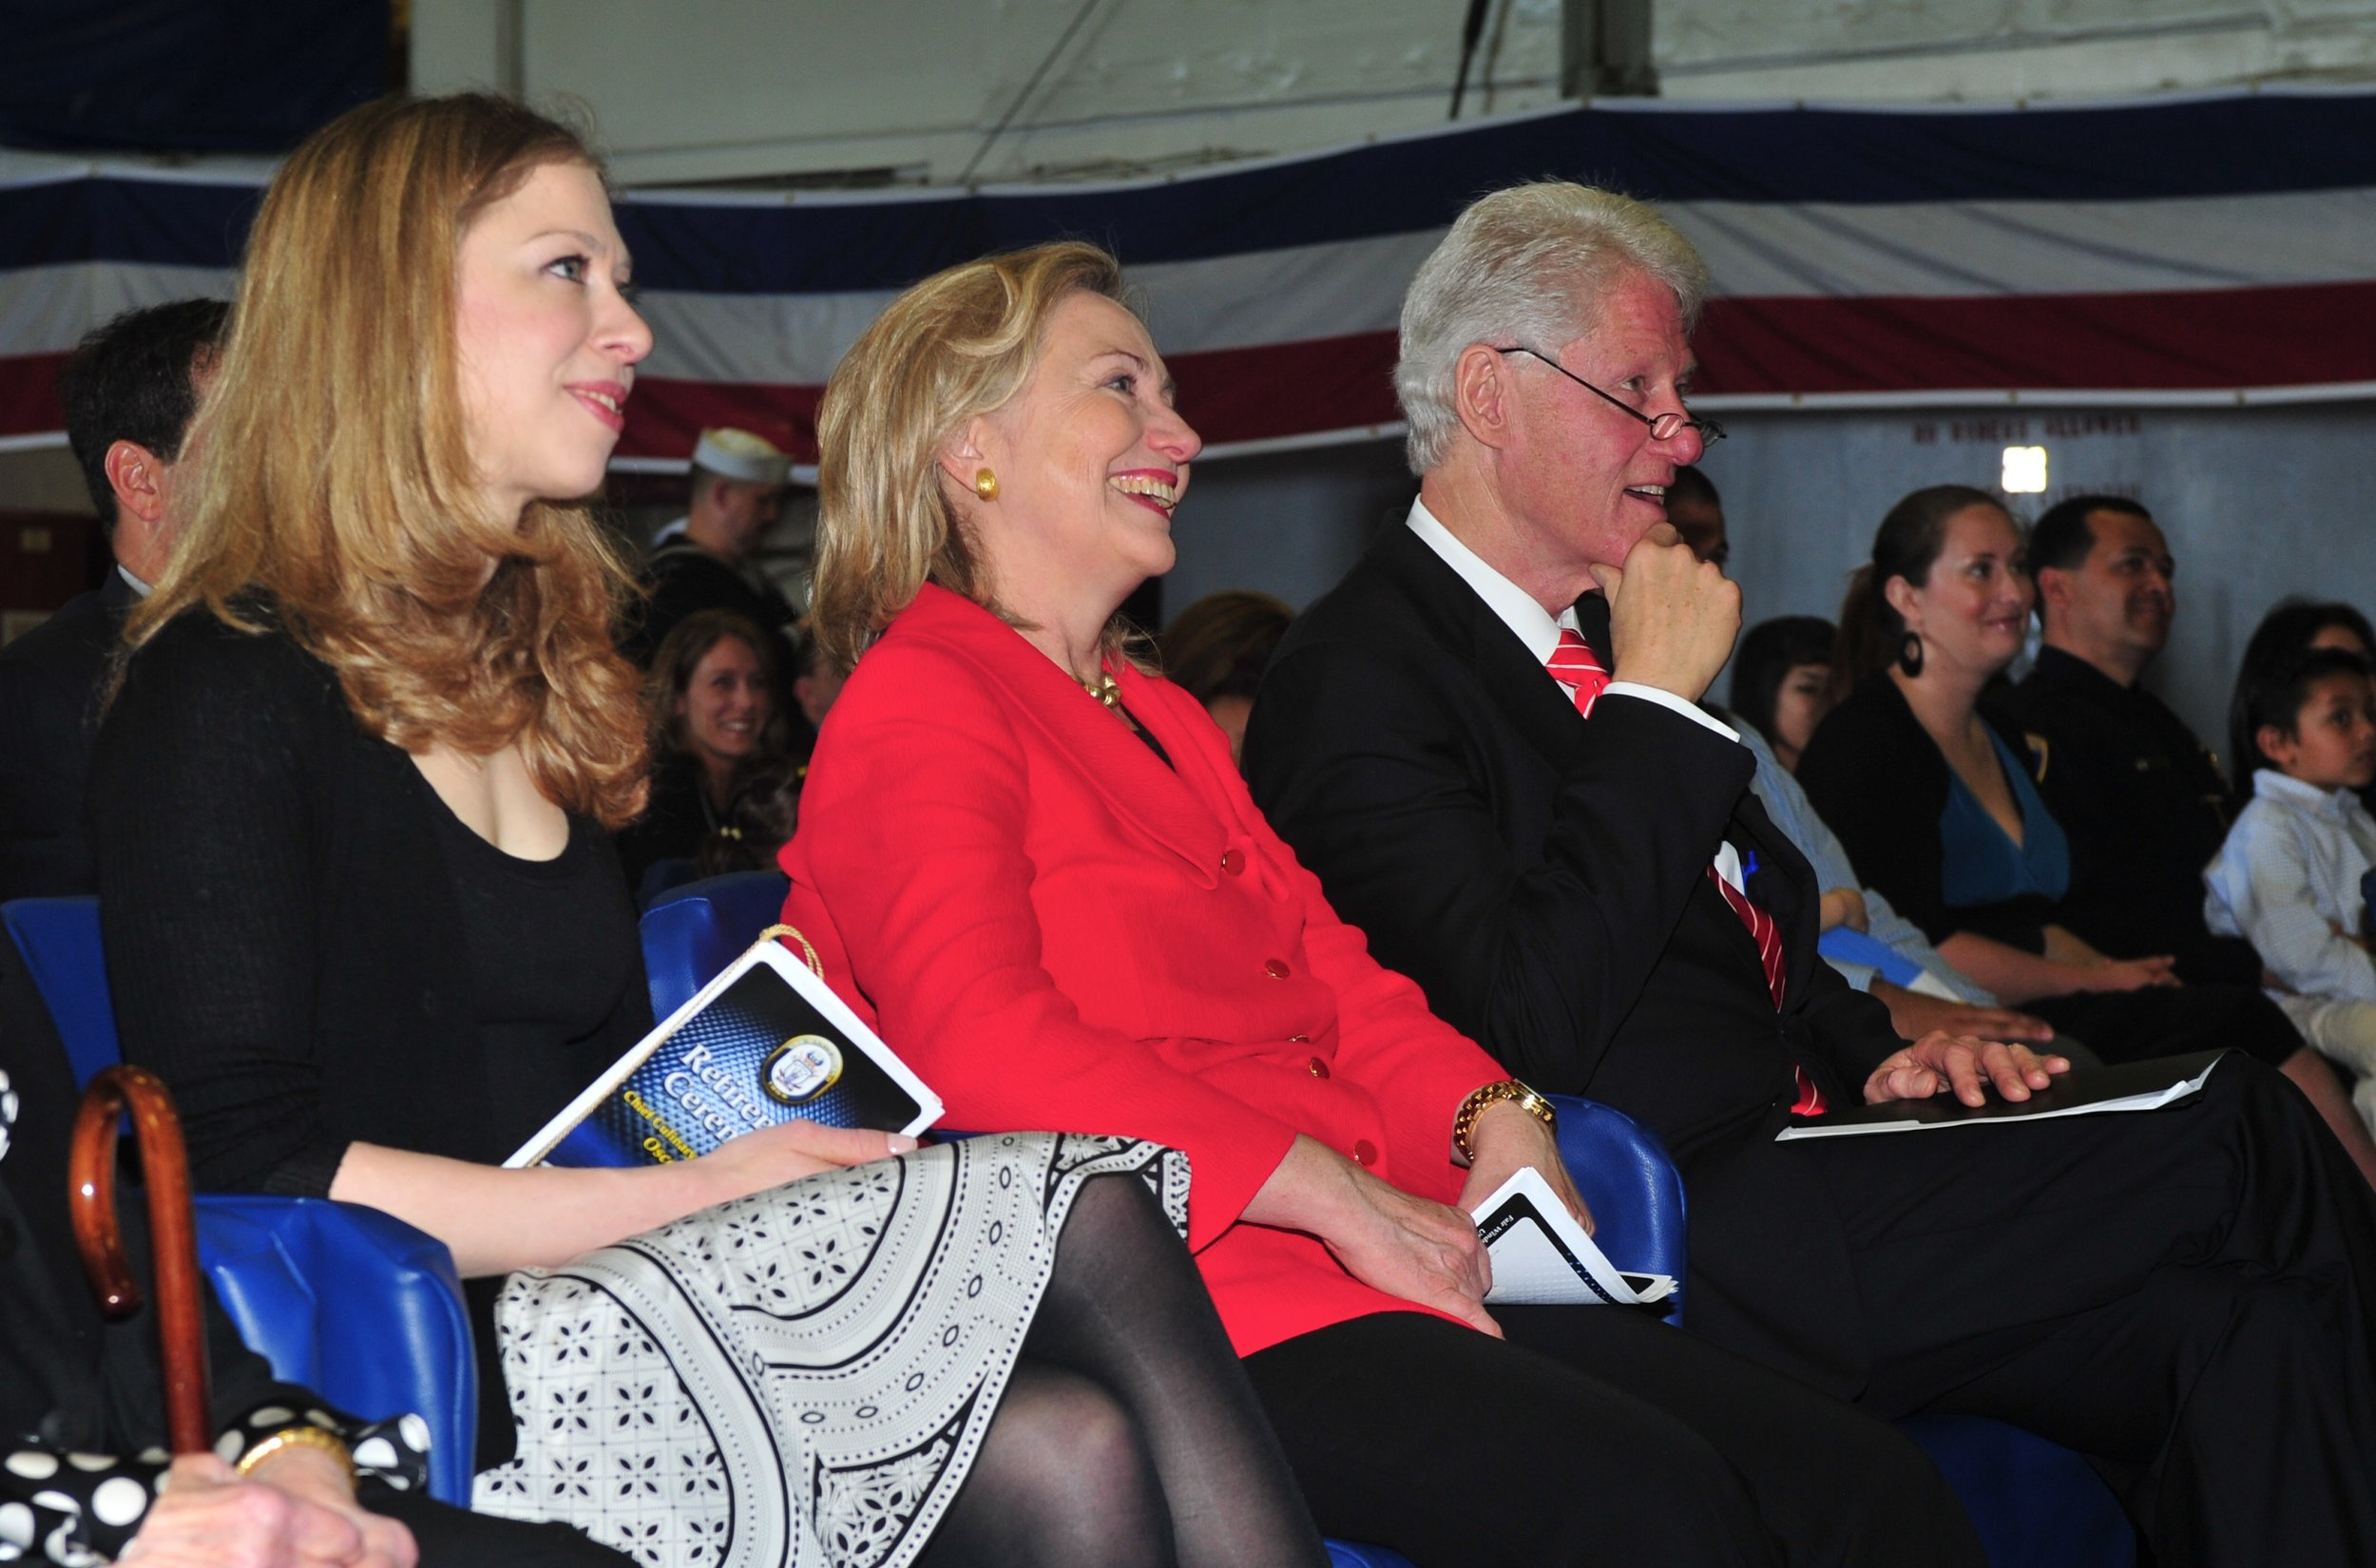 US_Navy_110401-N-KD852-385_Chelsea_Clinton,_left,_Secretary_of_State_Hillary_Rodham_Clinton_and_former_U.S._President_William_Jefferson_Clinton_att.jpg